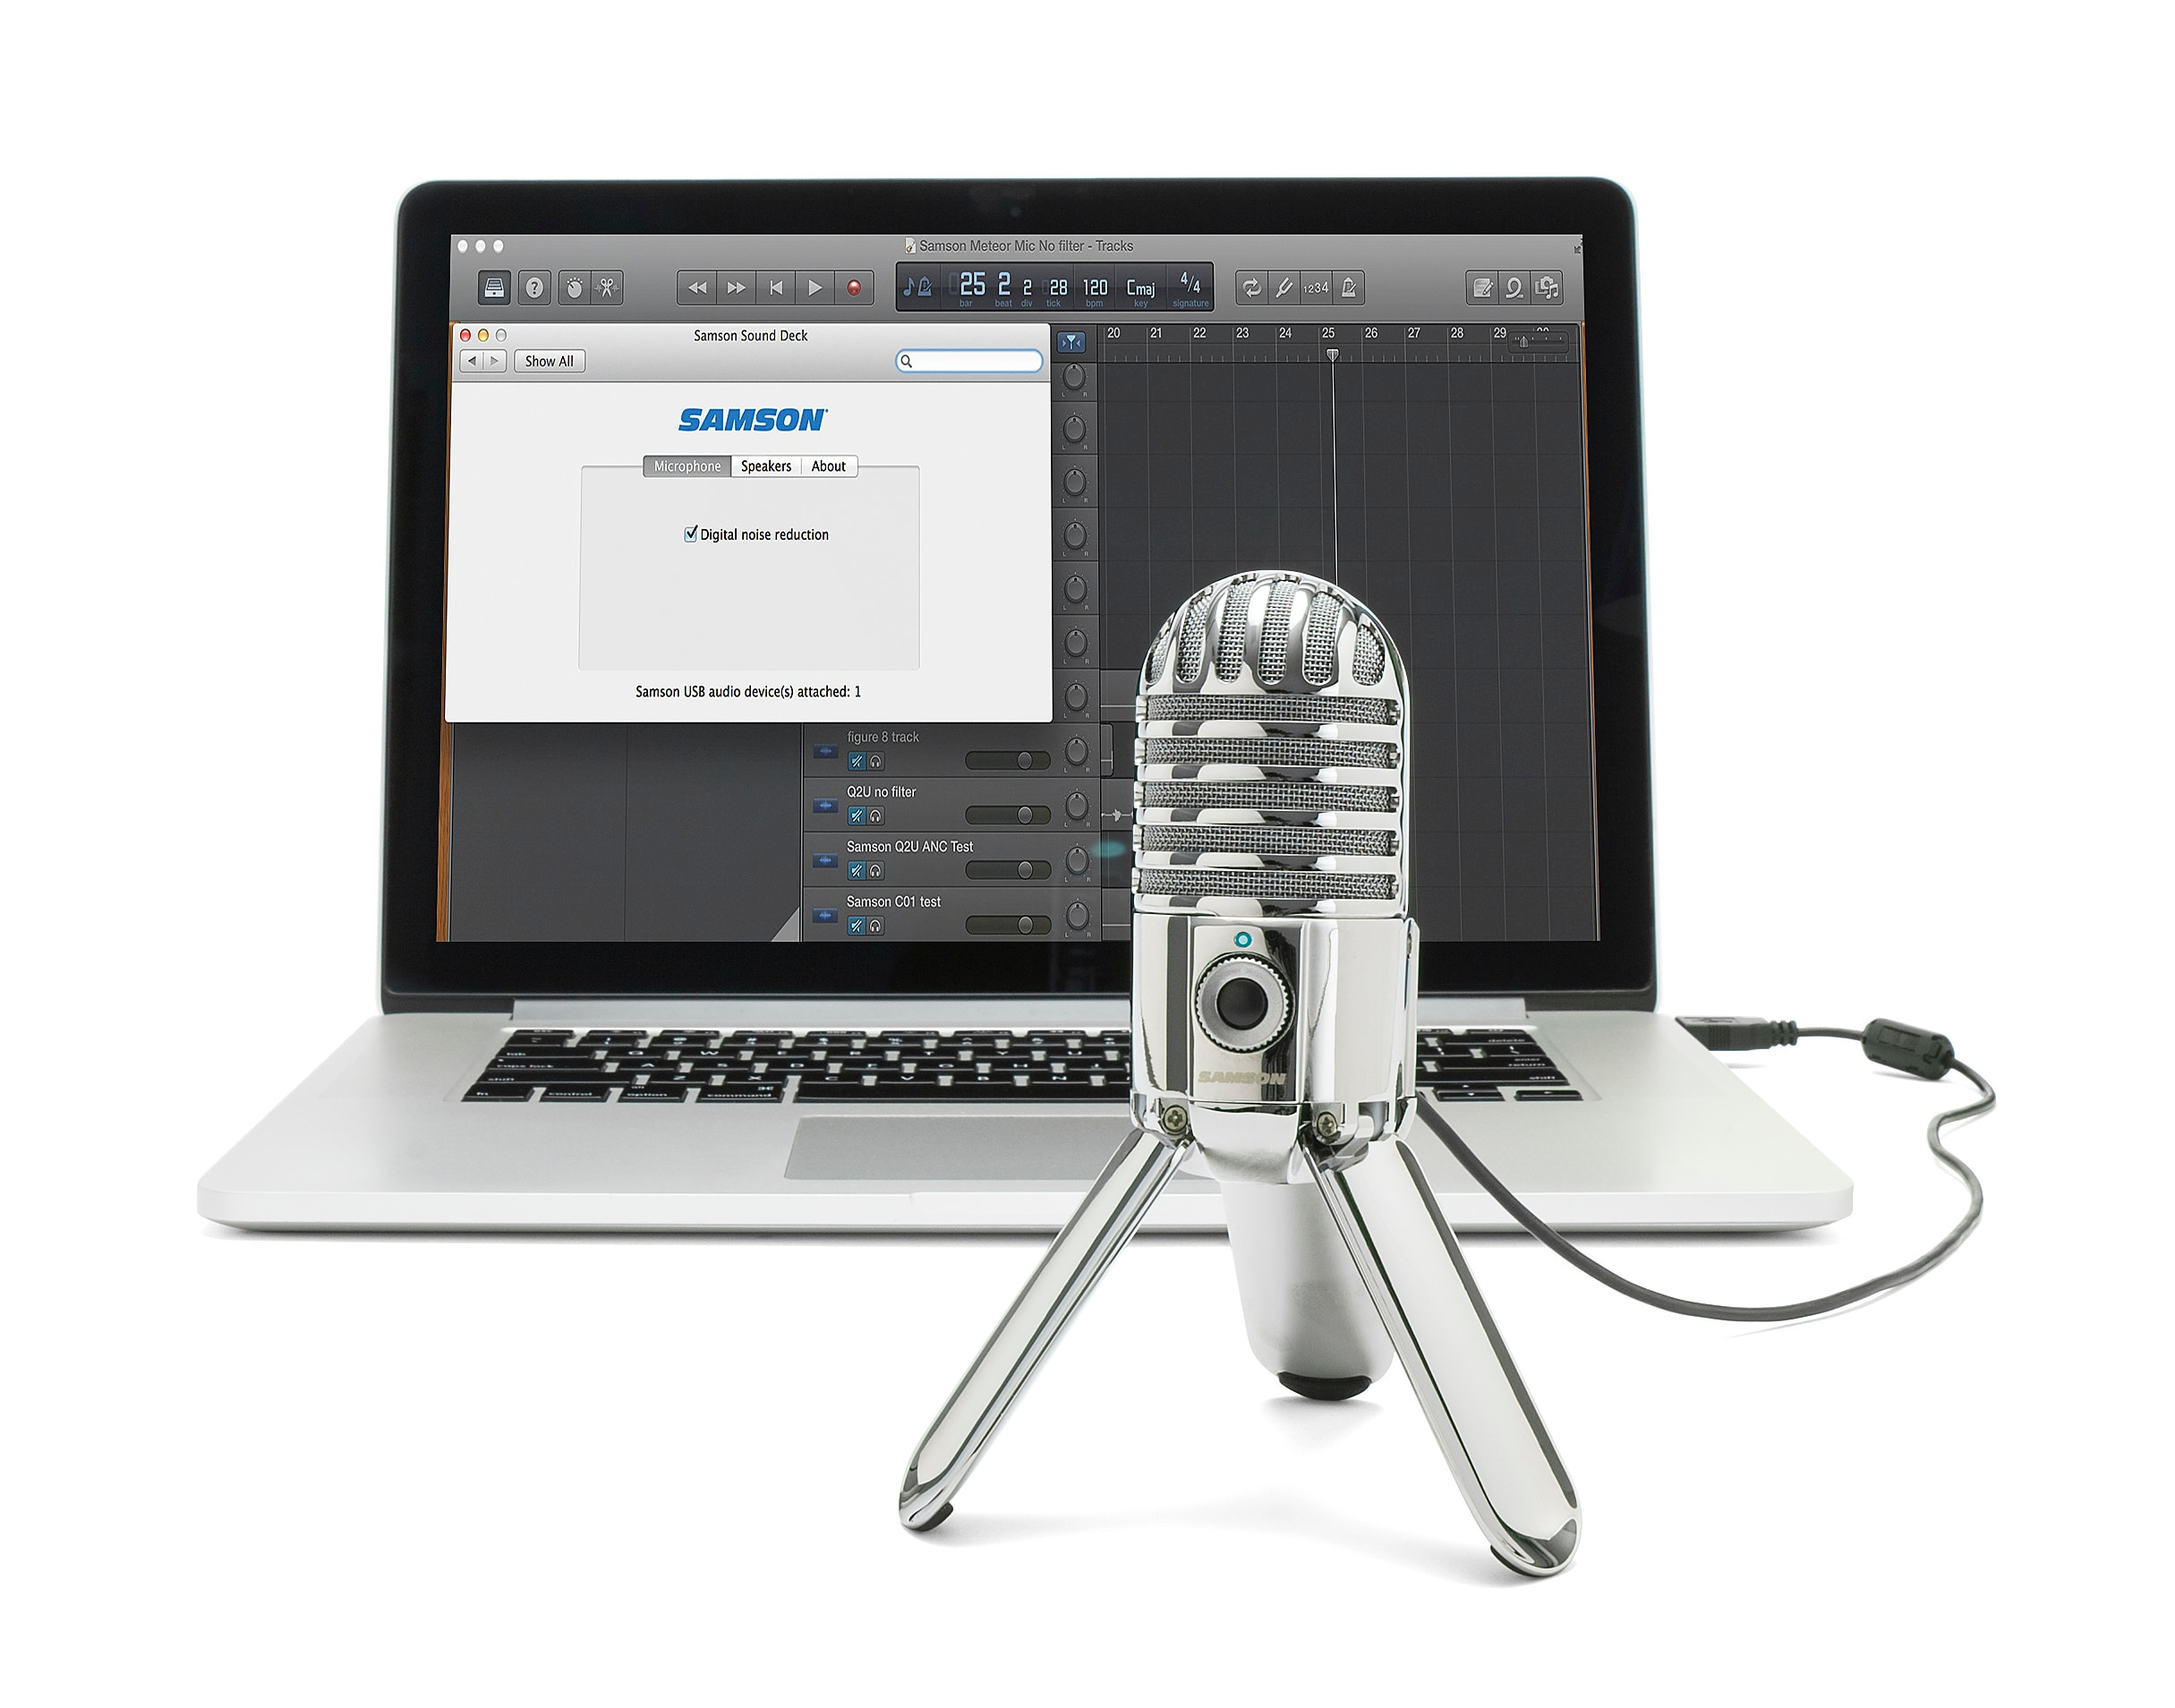 100% Original Samson Meteor USB Studio Condenser Microphone With Headphone Output For Journalism Home Video VOIP Record Gaming enlarge